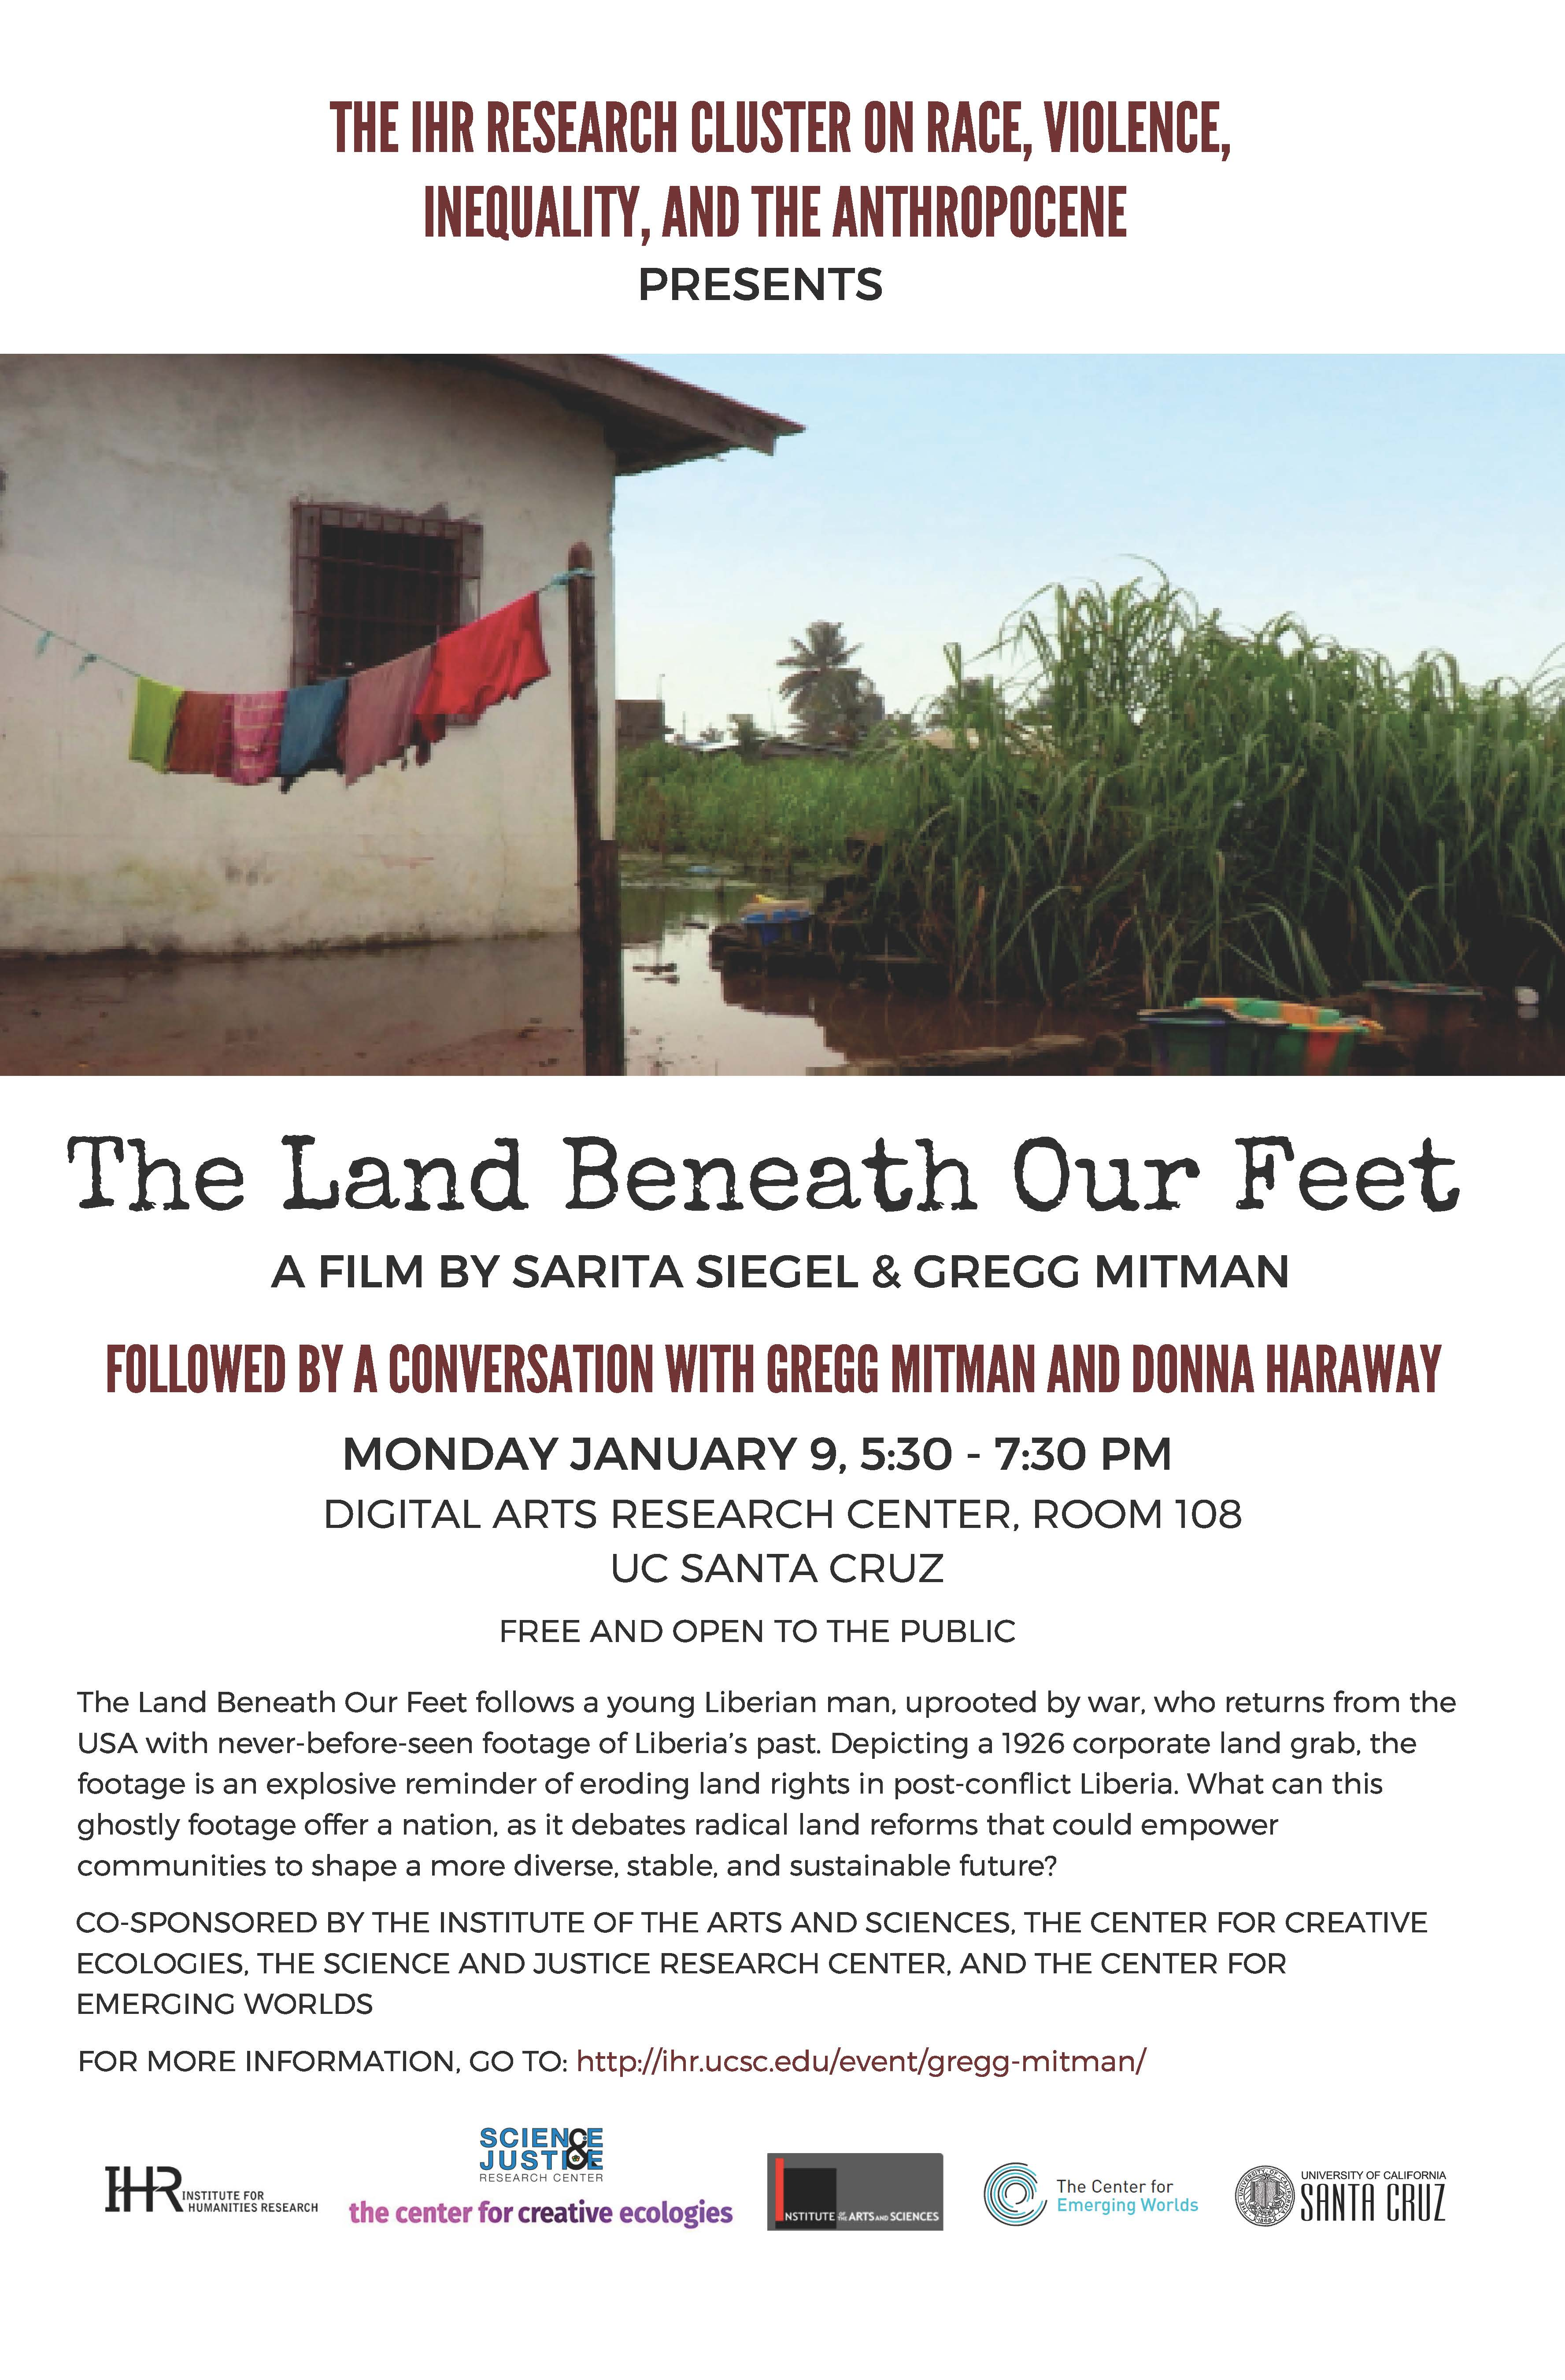 Land Beneath Our Feet film screening poster